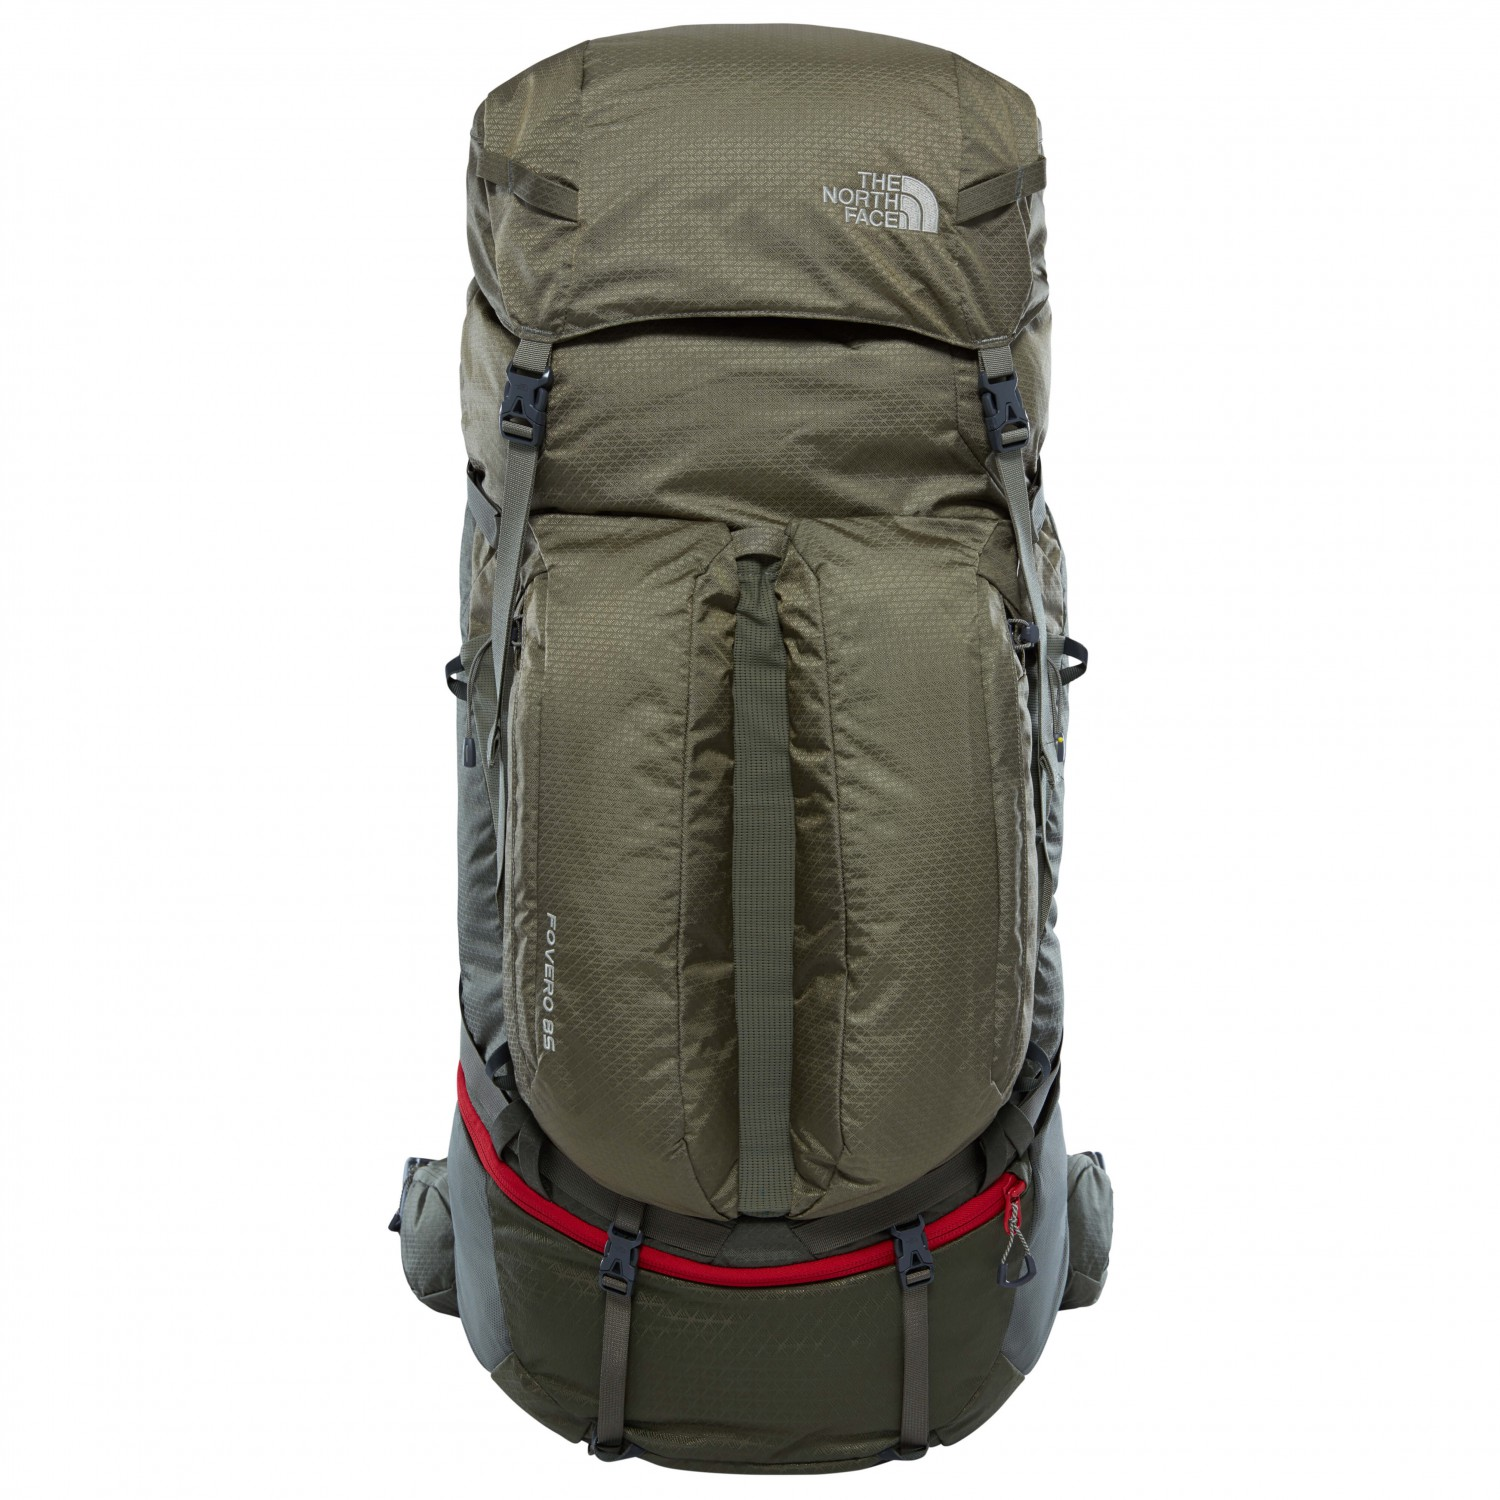 0b8f9c603 The North Face Fovero 85 - Walking backpack | Buy online ...